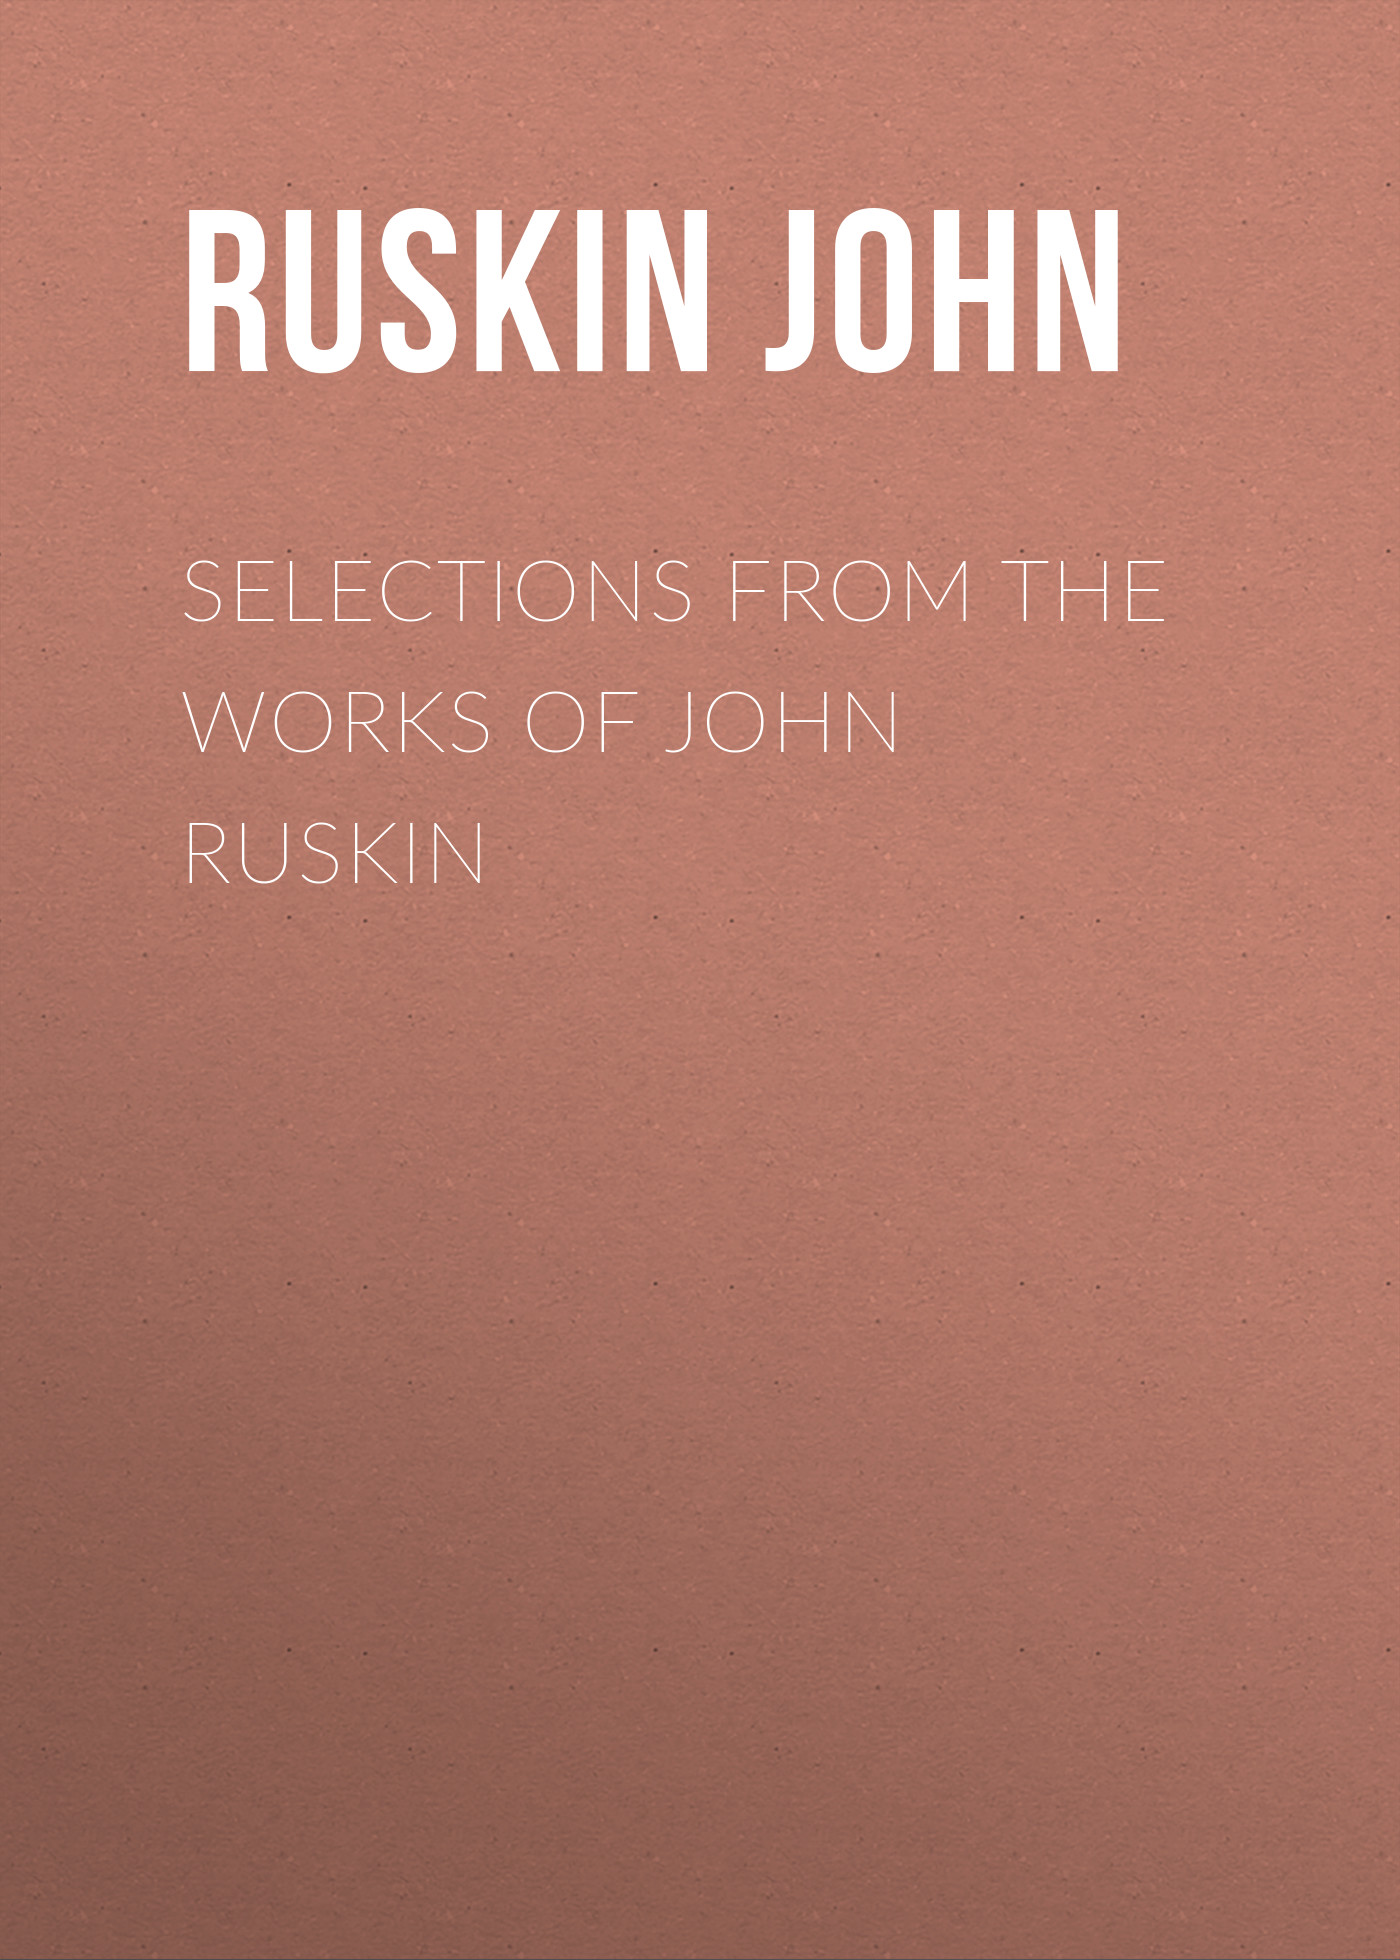 Ruskin John Selections From the Works of John Ruskin ruskin john 1819 1900 the poems of john ruskin now first collected from original manuscript and printed sources volume 2